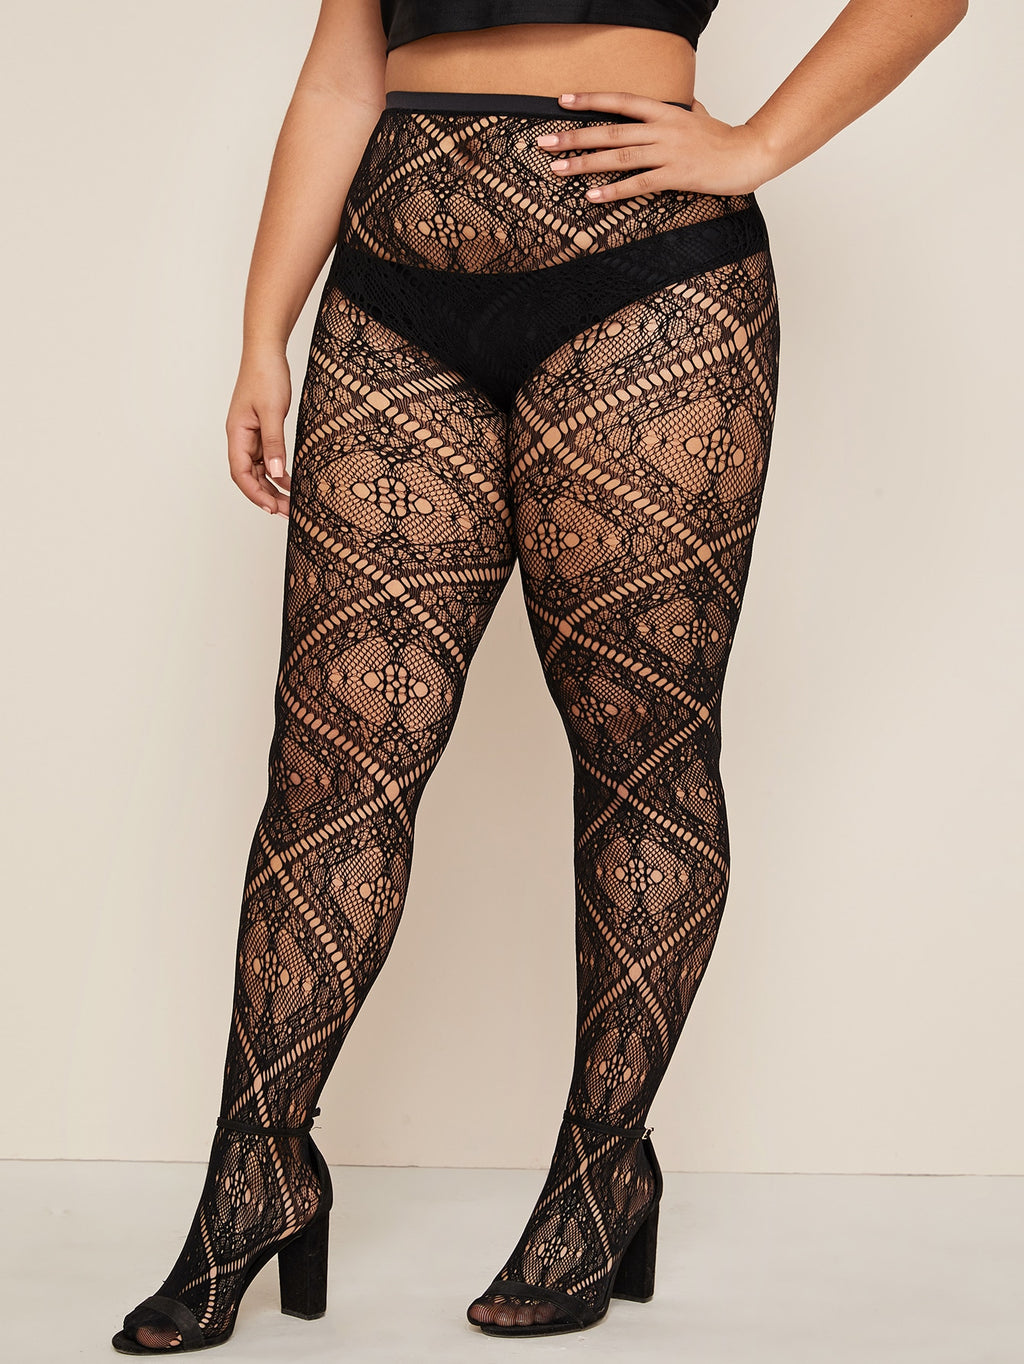 Plus Size Sheer Mesh Tights